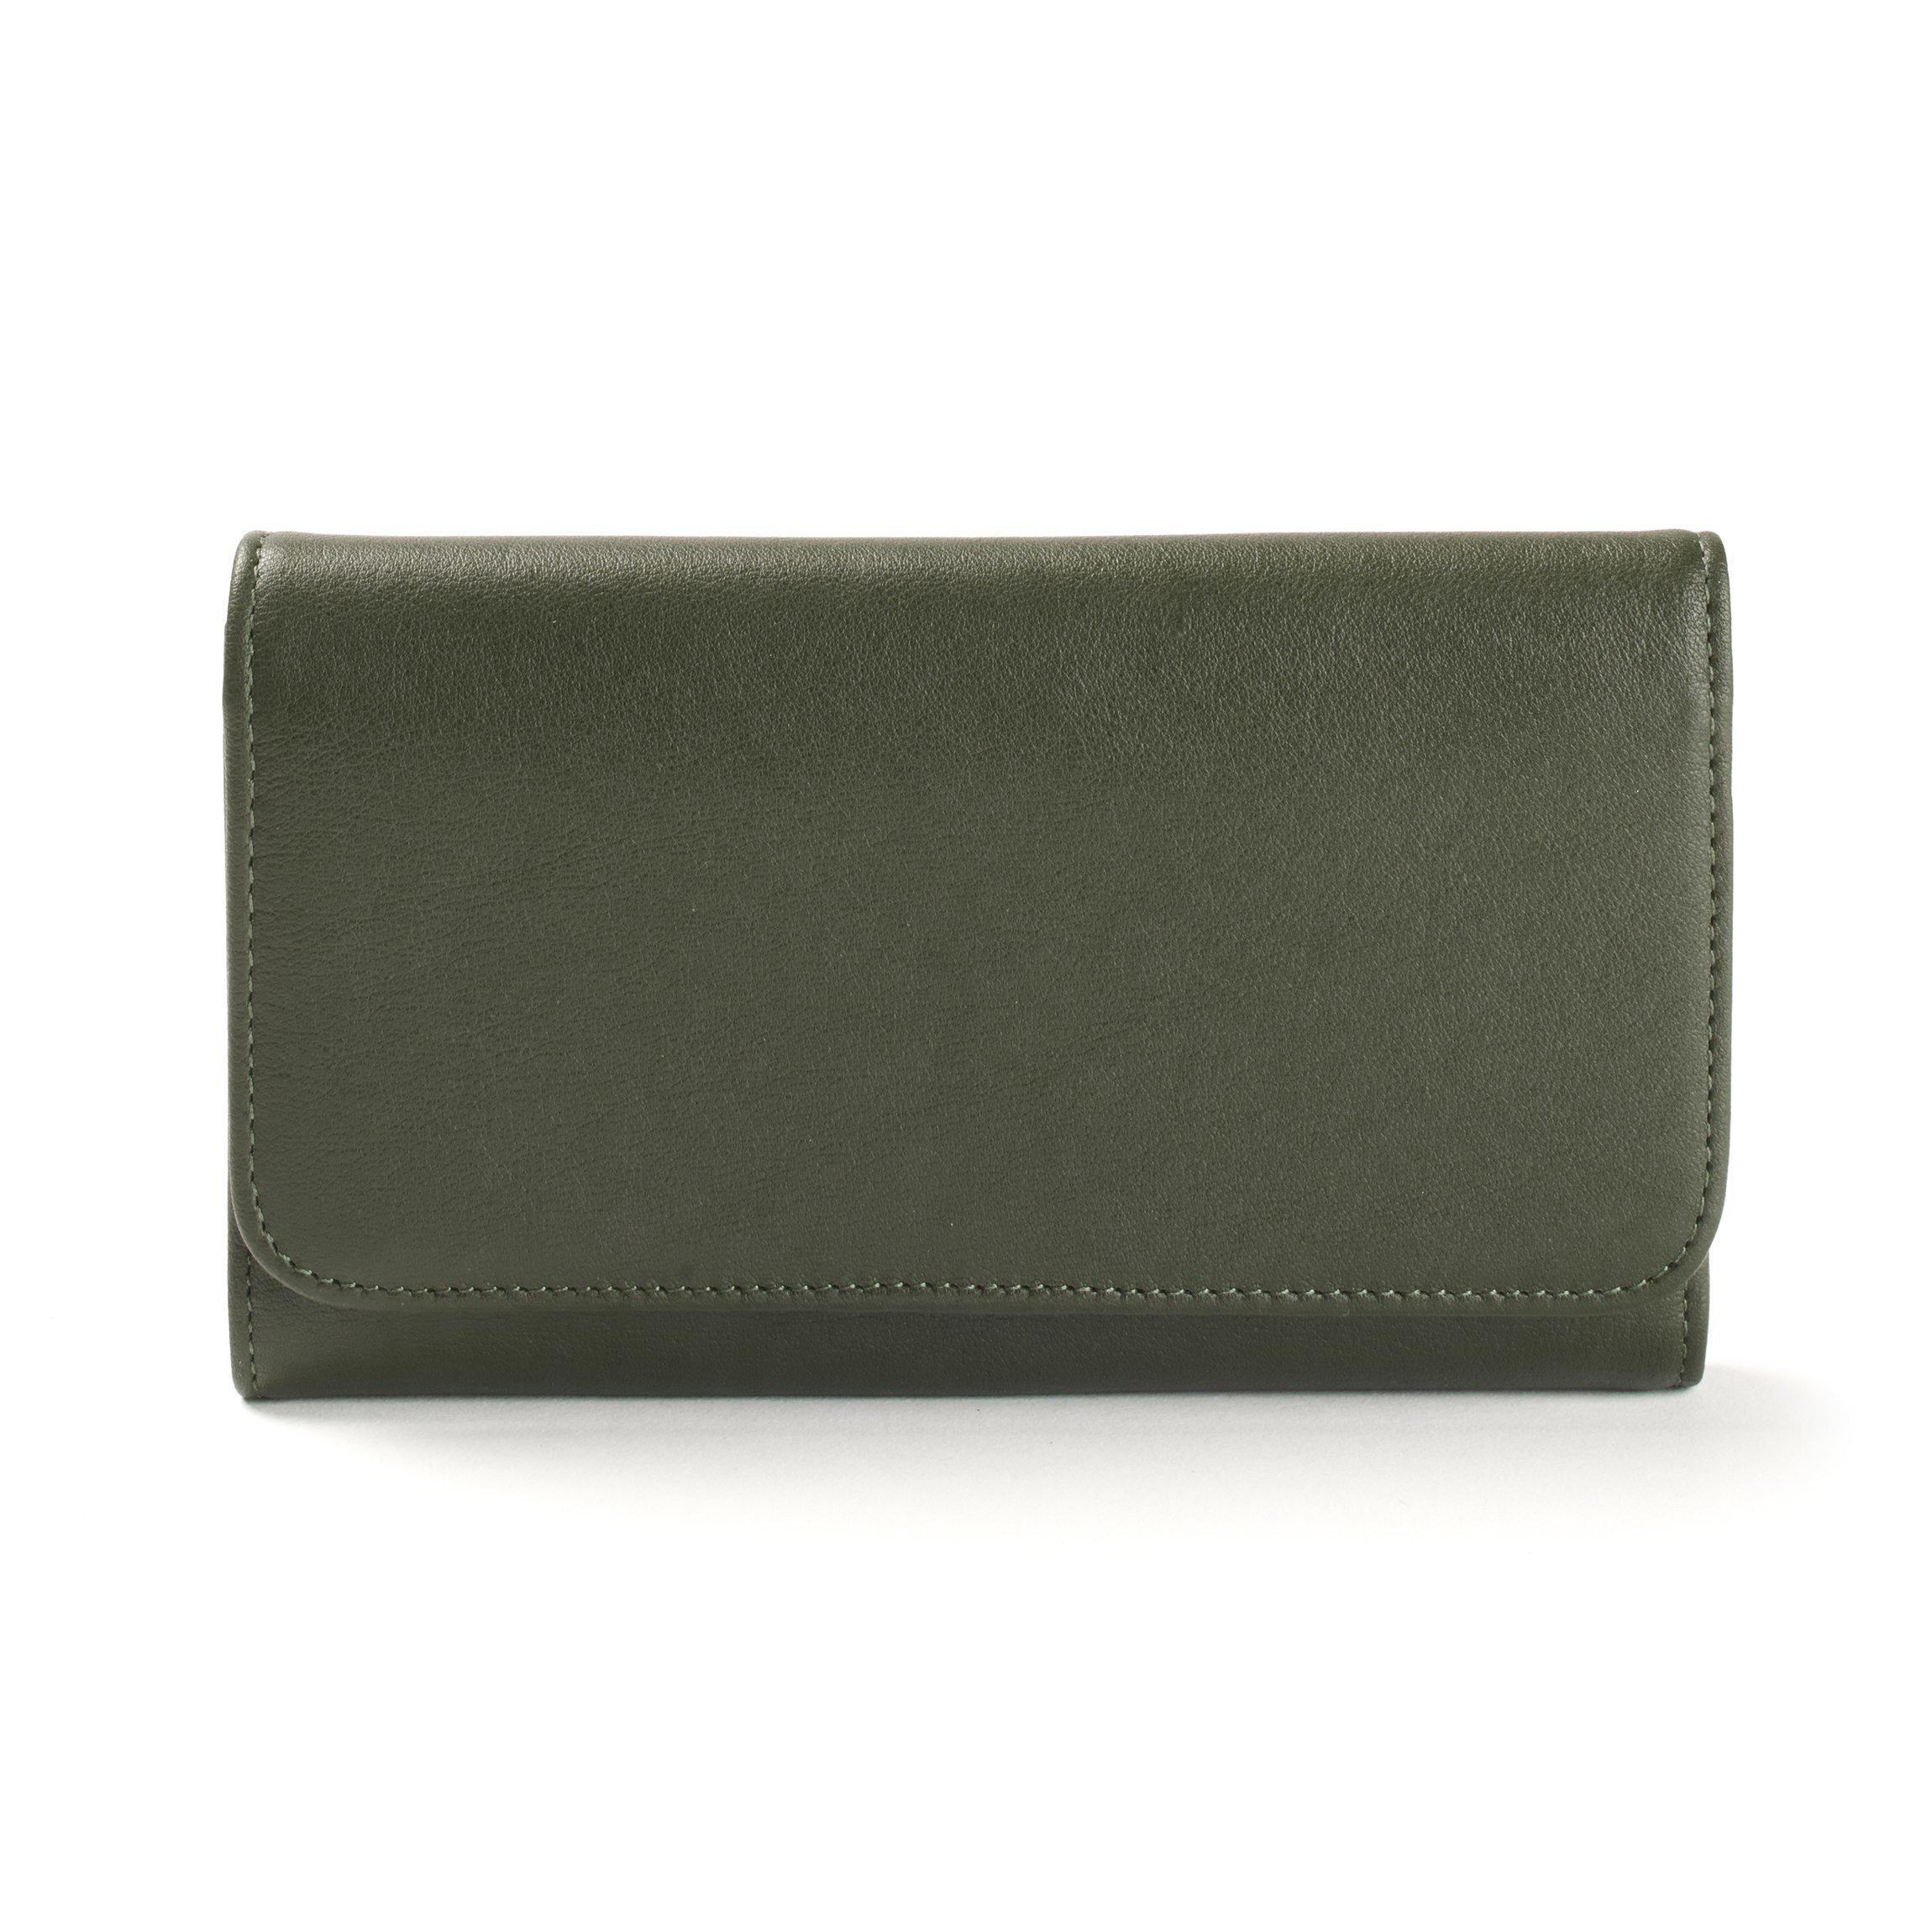 Checkbook Clutch Wallet - Full Grain Leather - Hunter Green (green) by Leatherology